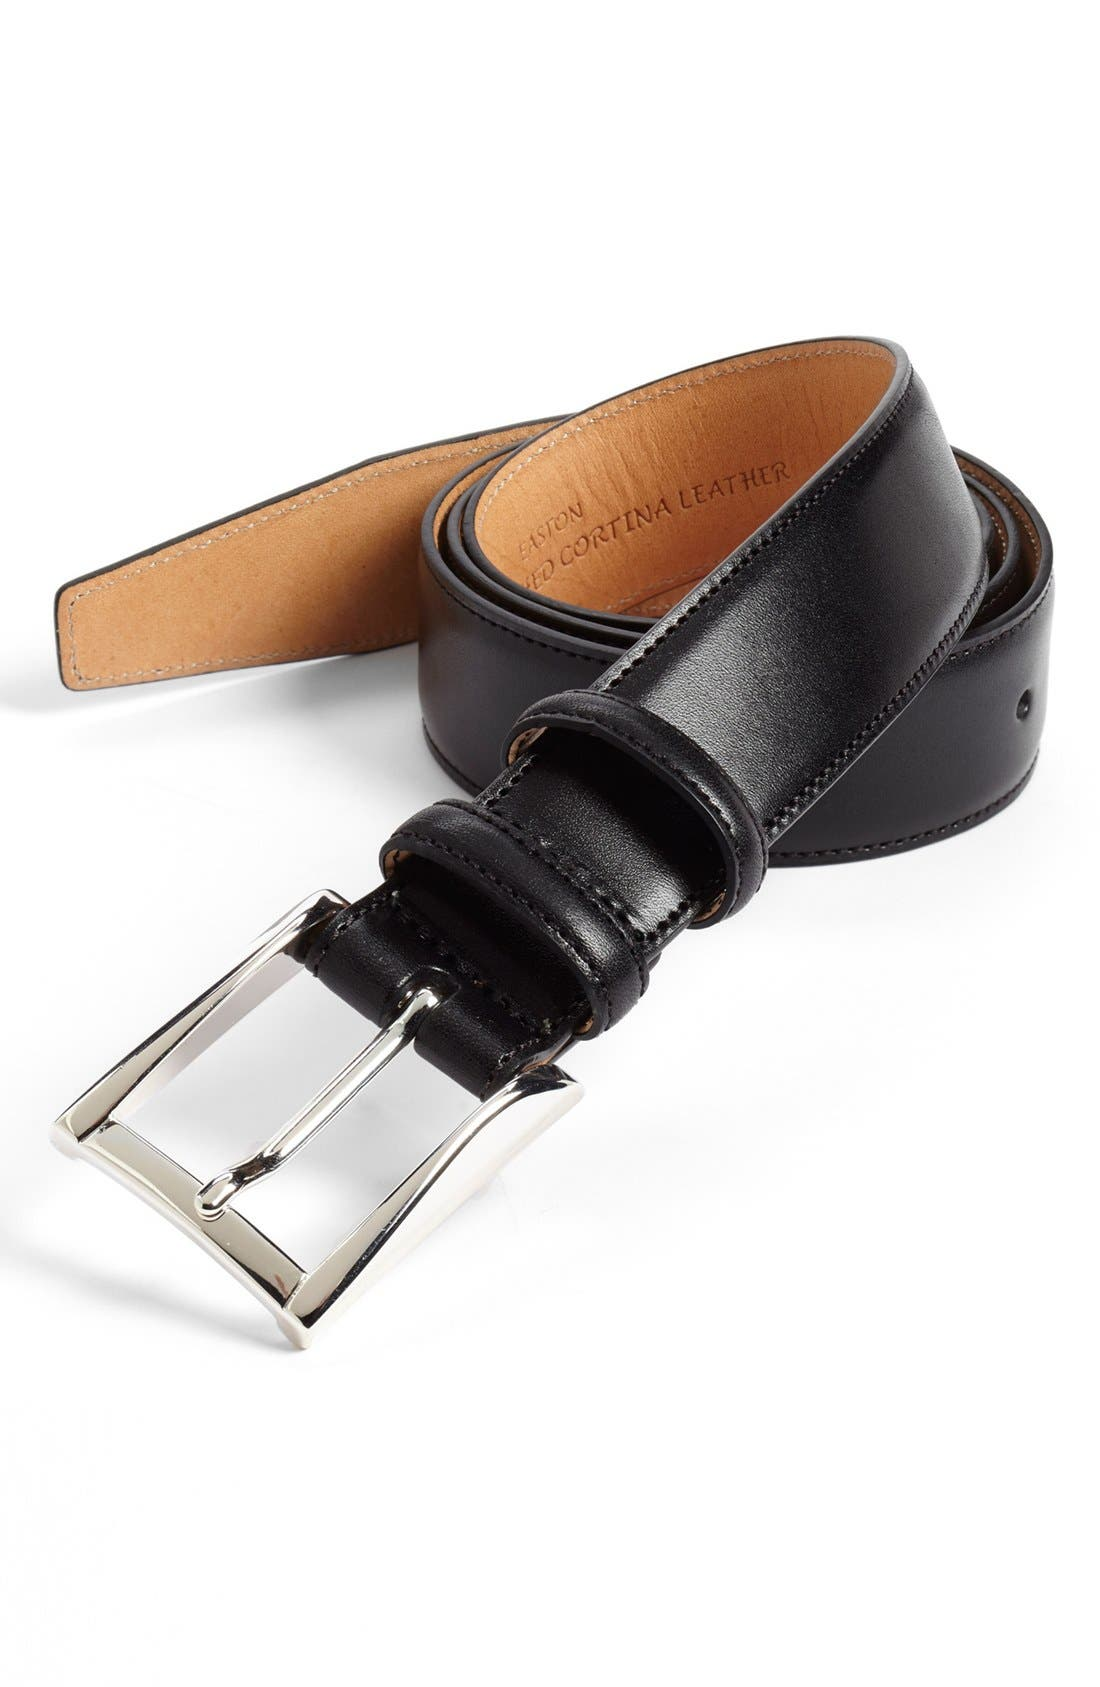 Main Image - Trafalgar 'Easton' Calfskin Belt